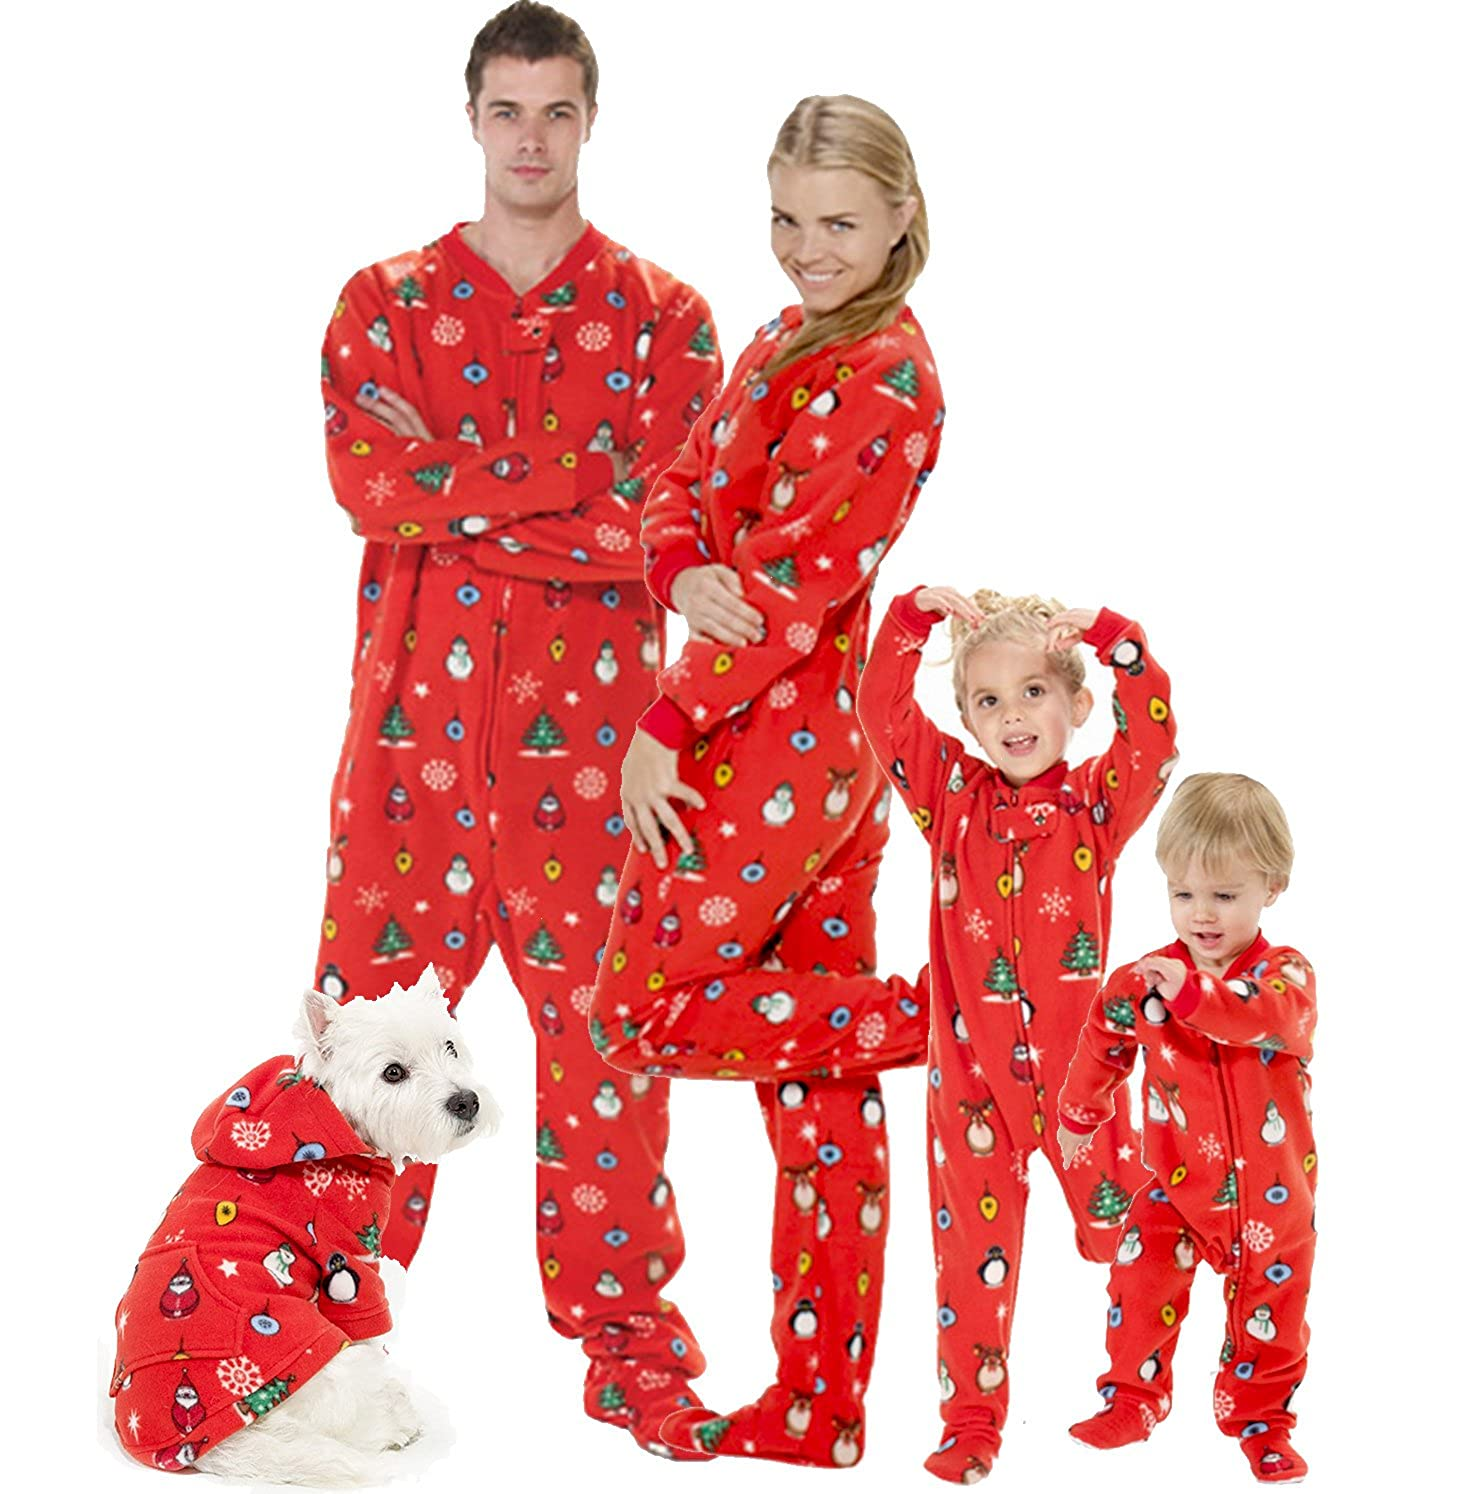 Christmas Pajamas Photoshoot.Footed Pajamas Family Matching Red Christmas Onesies For Boys Girls Men Women And Pets